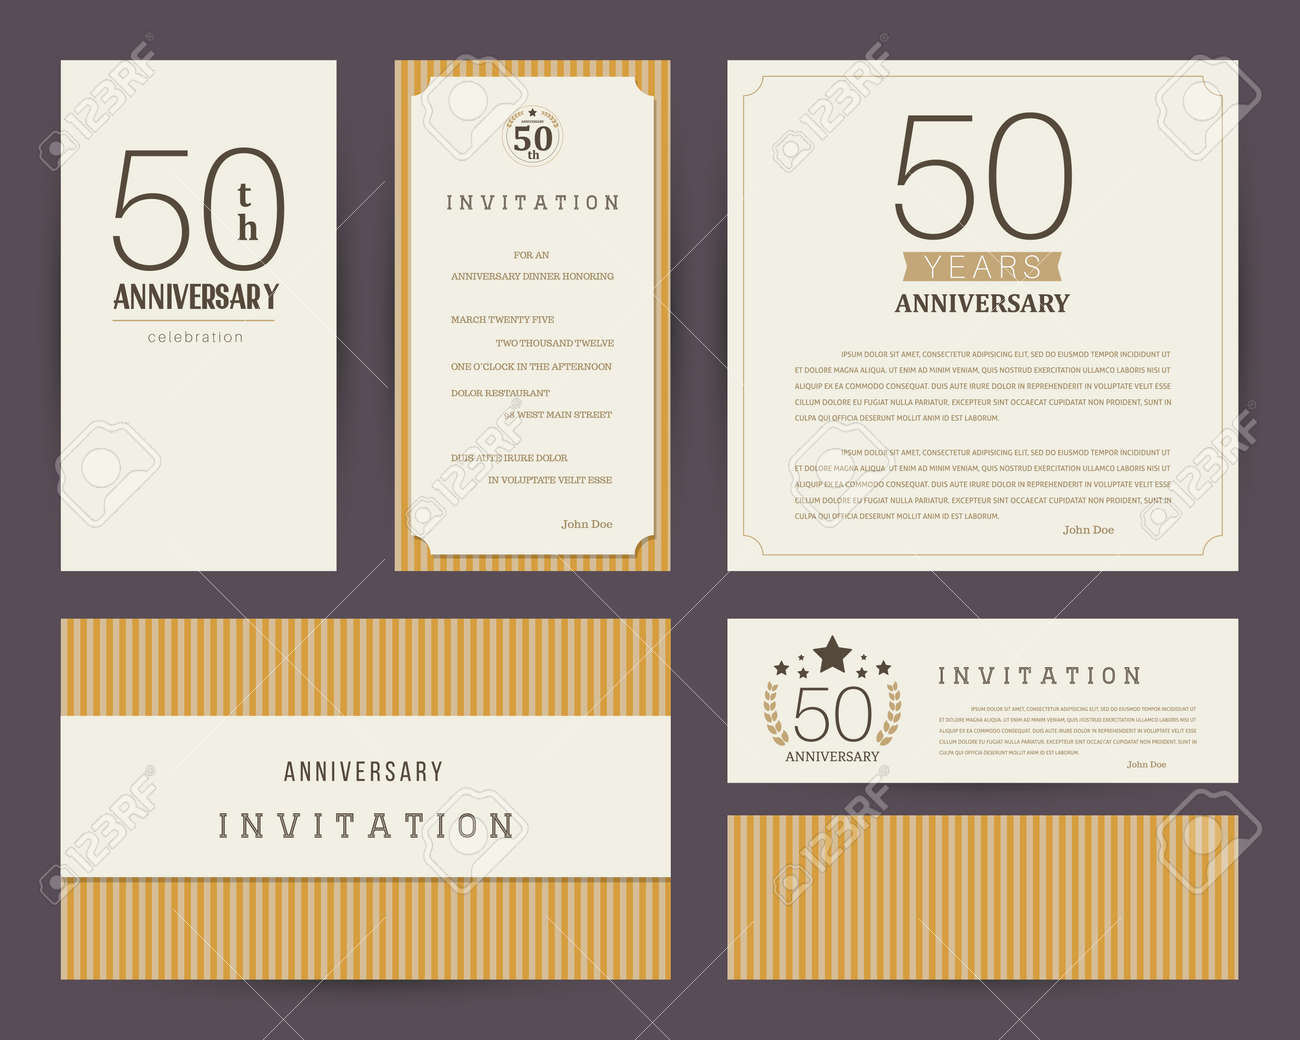 50th anniversary invitation cards template. Stock Vector - 98089602